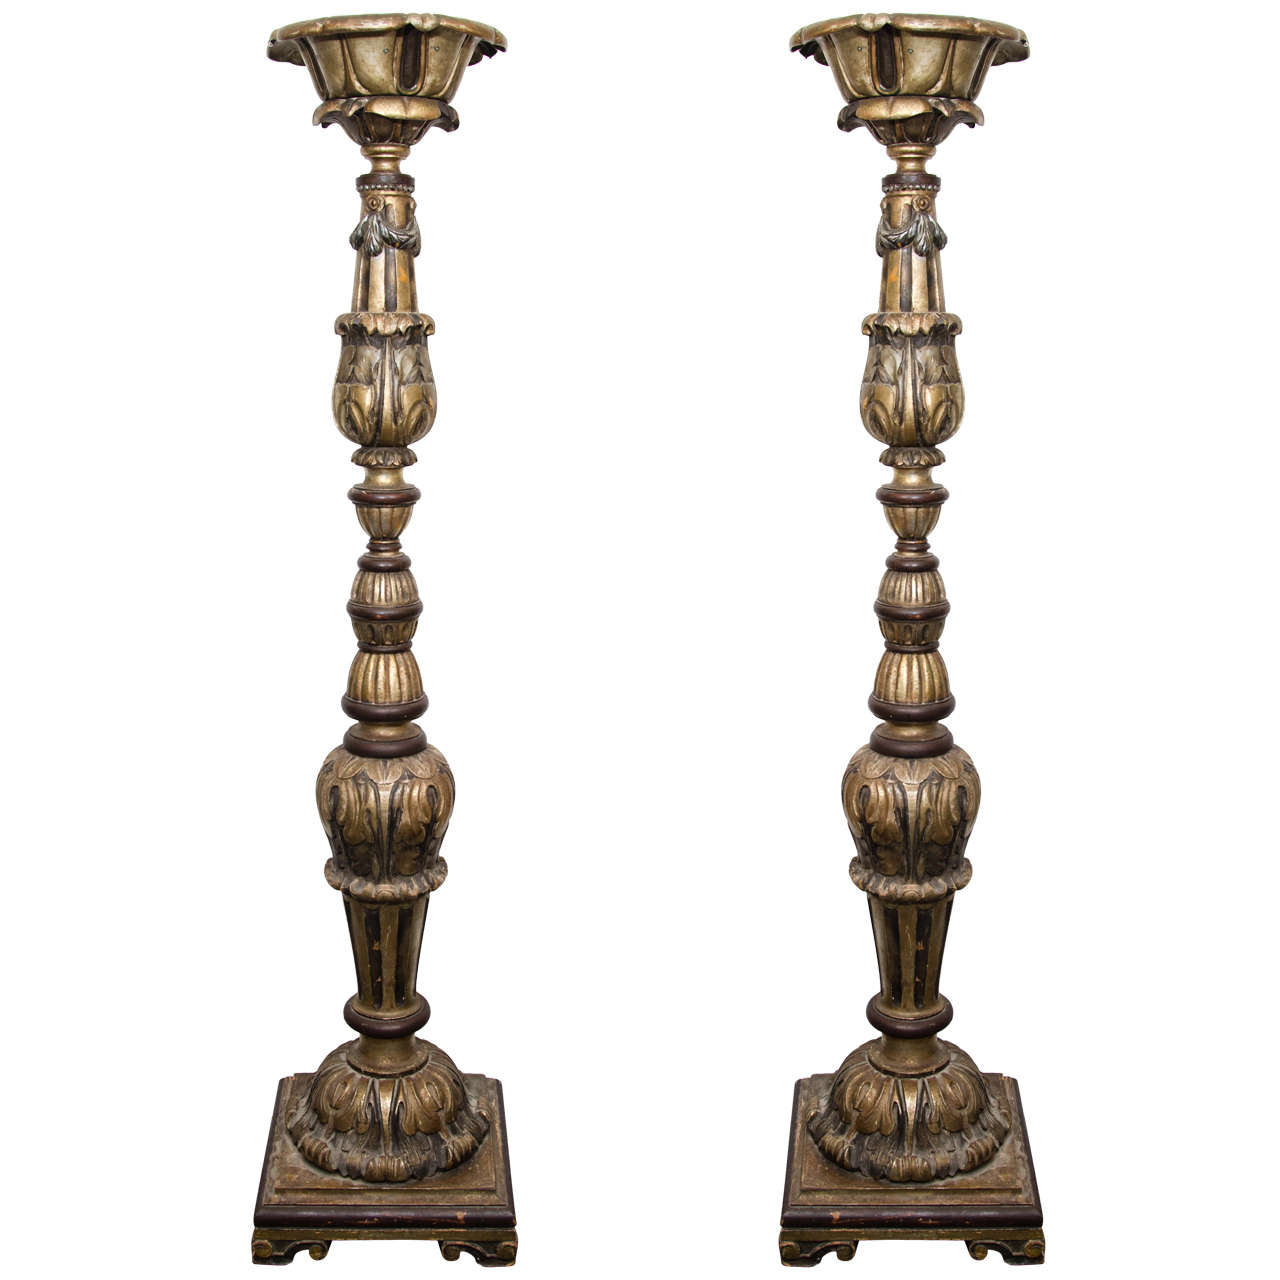 incredible unique pair of monumental hand carved floor lamps for sale